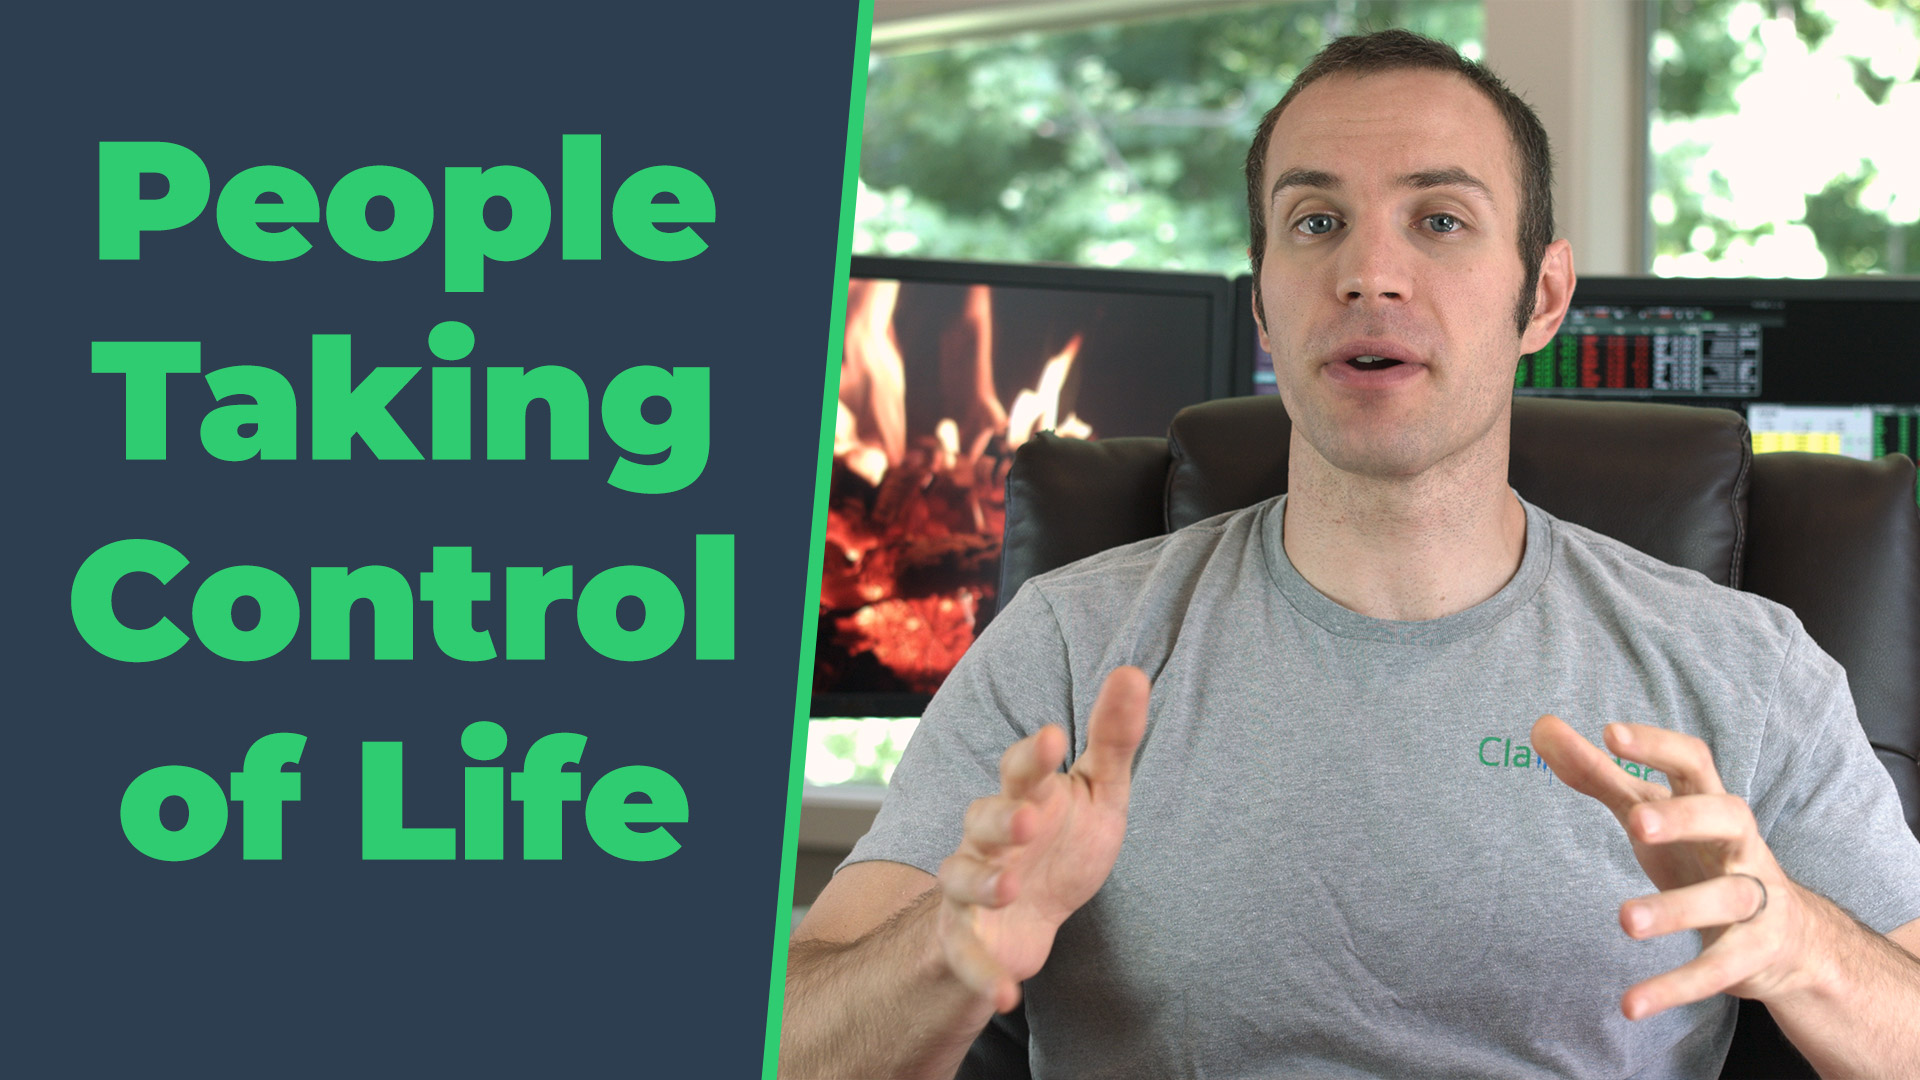 People Taking Control of Life